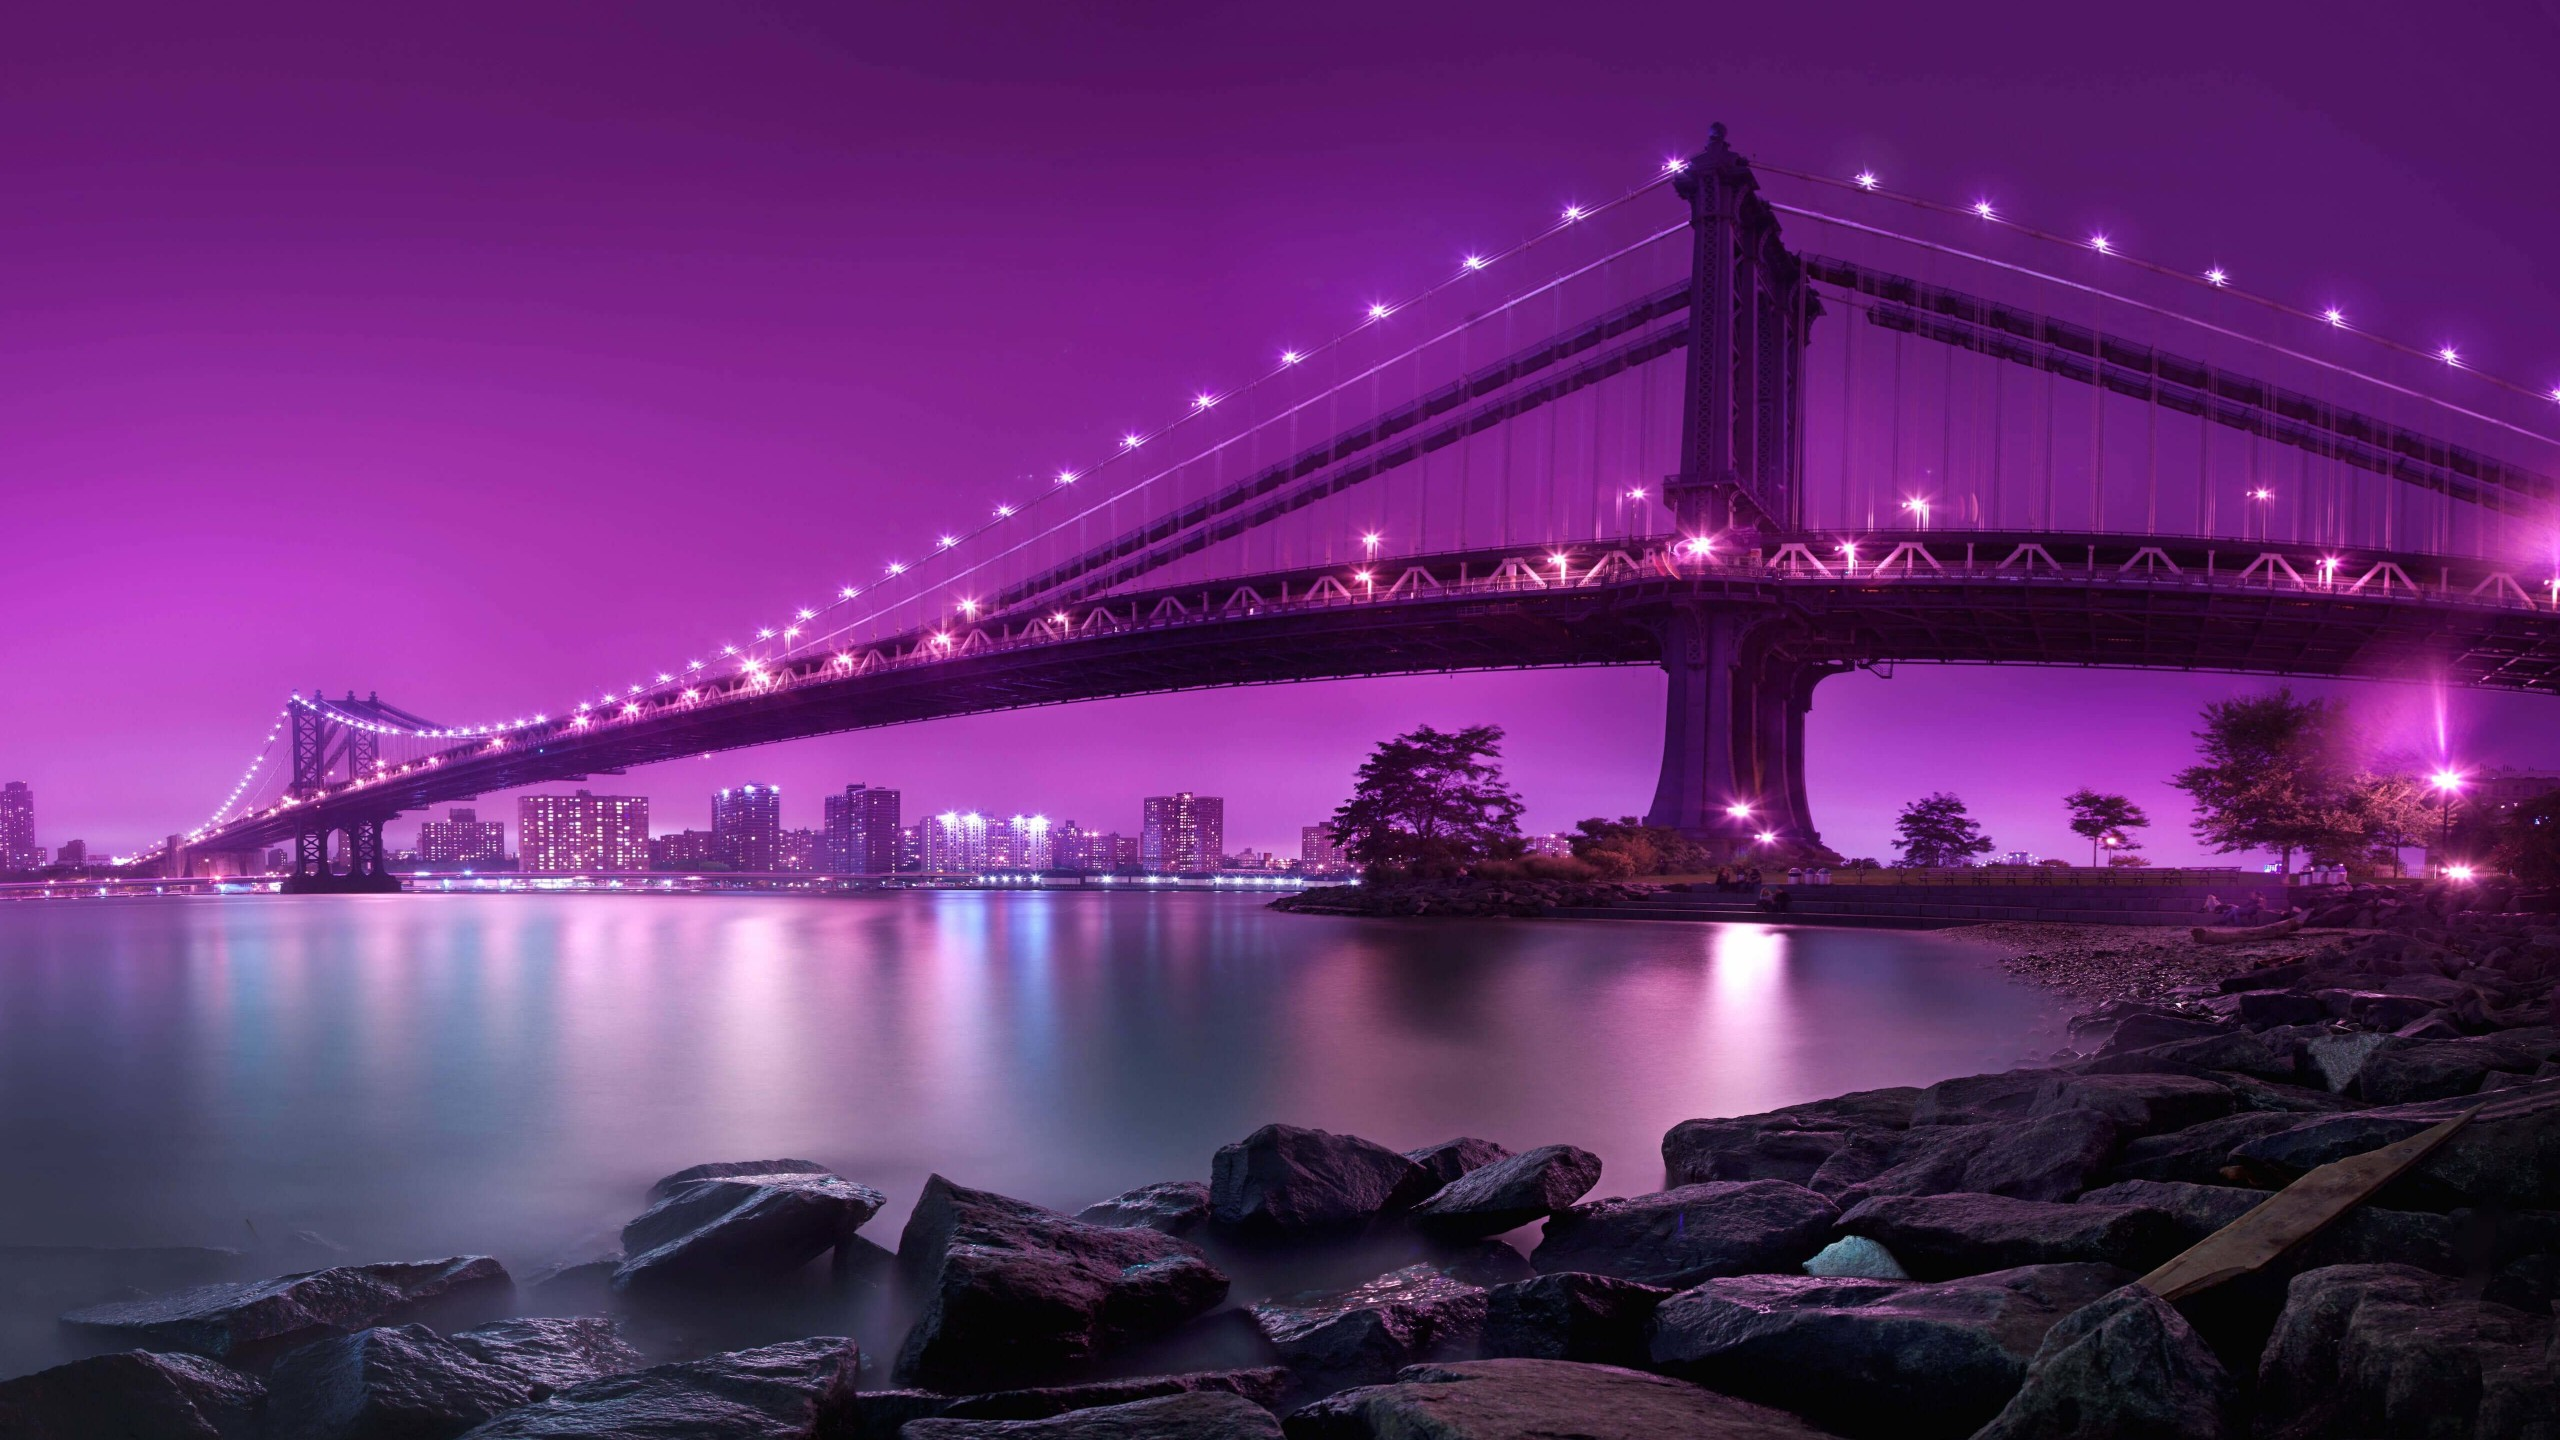 Brooklyn Bridge by night Wallpaper for Social Media YouTube Channel Art